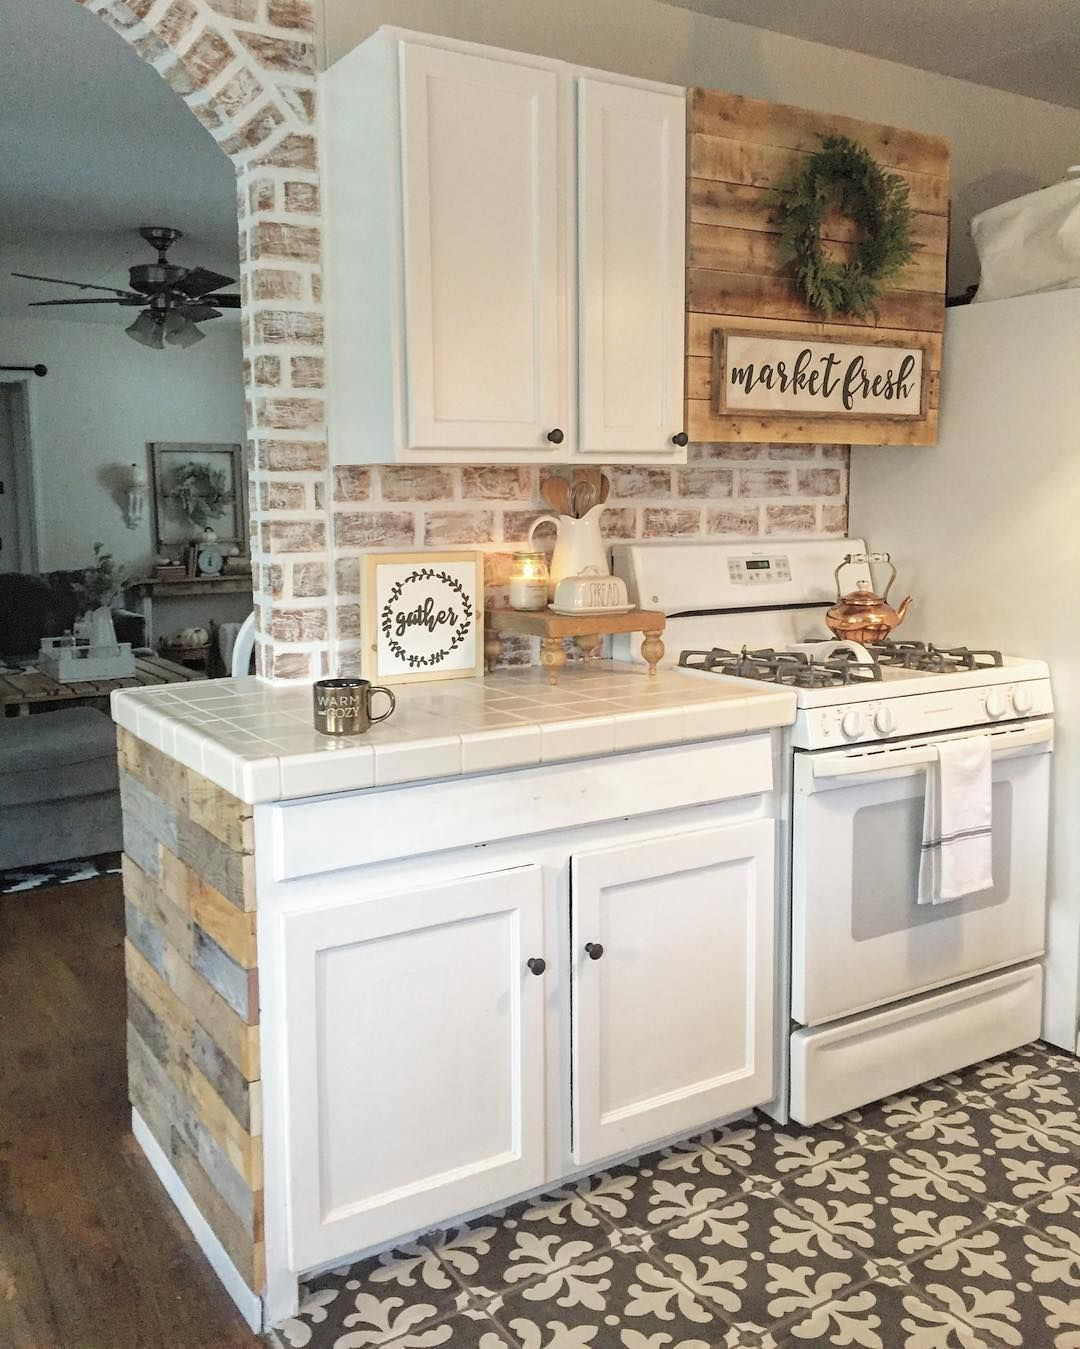 Find Ideas And Inspiration For Decorative Kitchen Tiles To Add To Your Own  Home · Faux Brick BacksplashKitchens ...